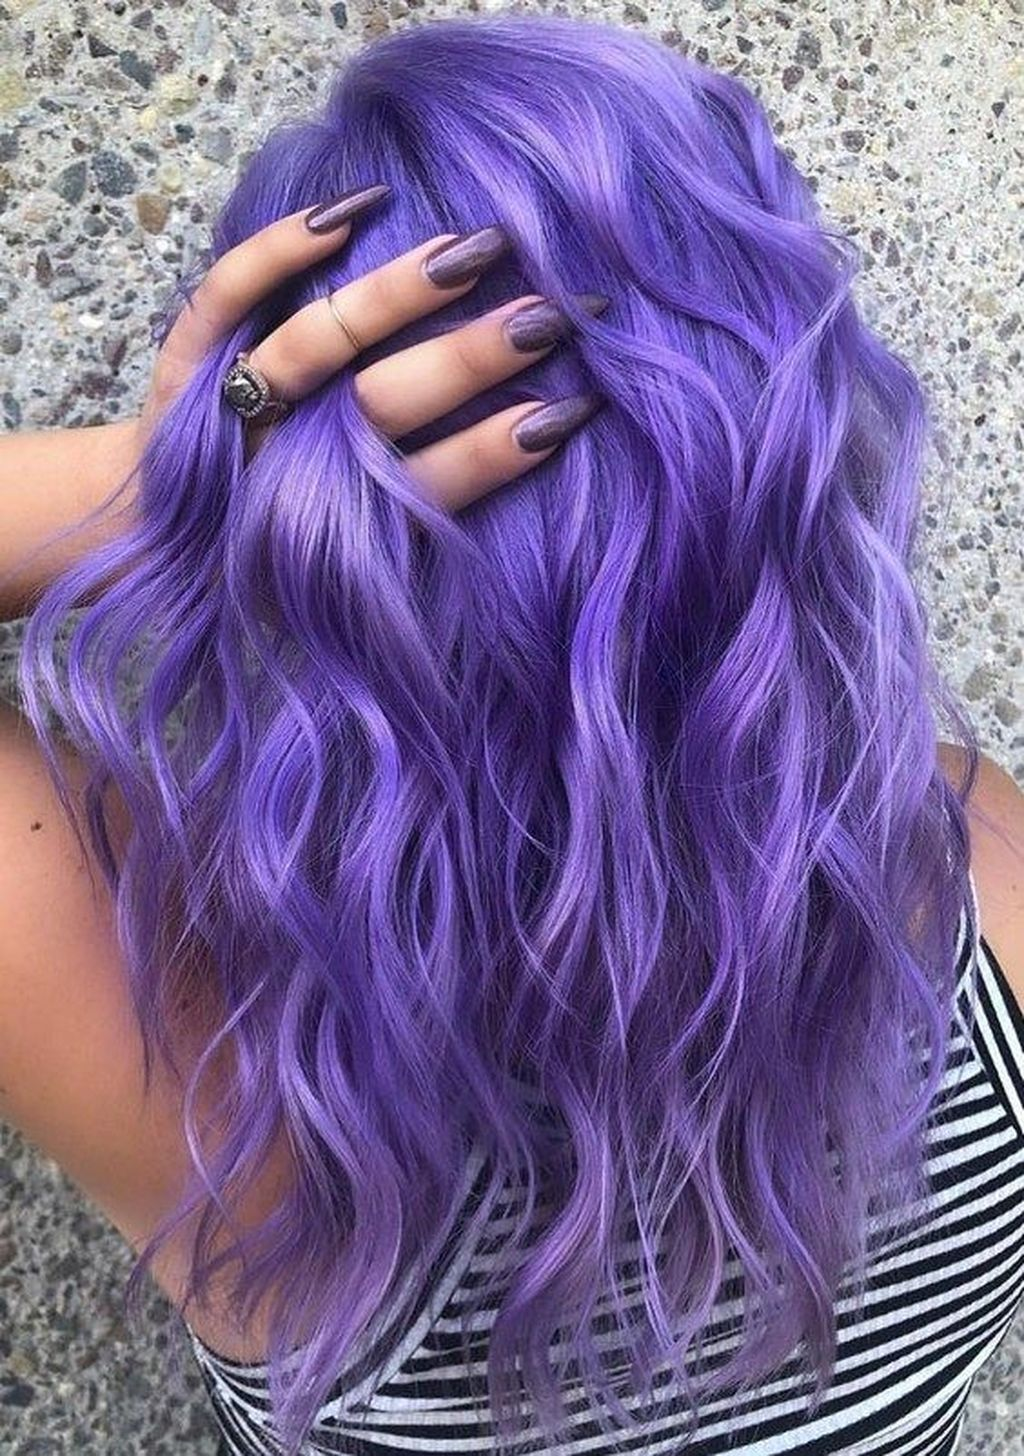 Awesome 30 Cool Hair Color Ideas Lavender Hair Colors Hair Color Purple Hair Styles